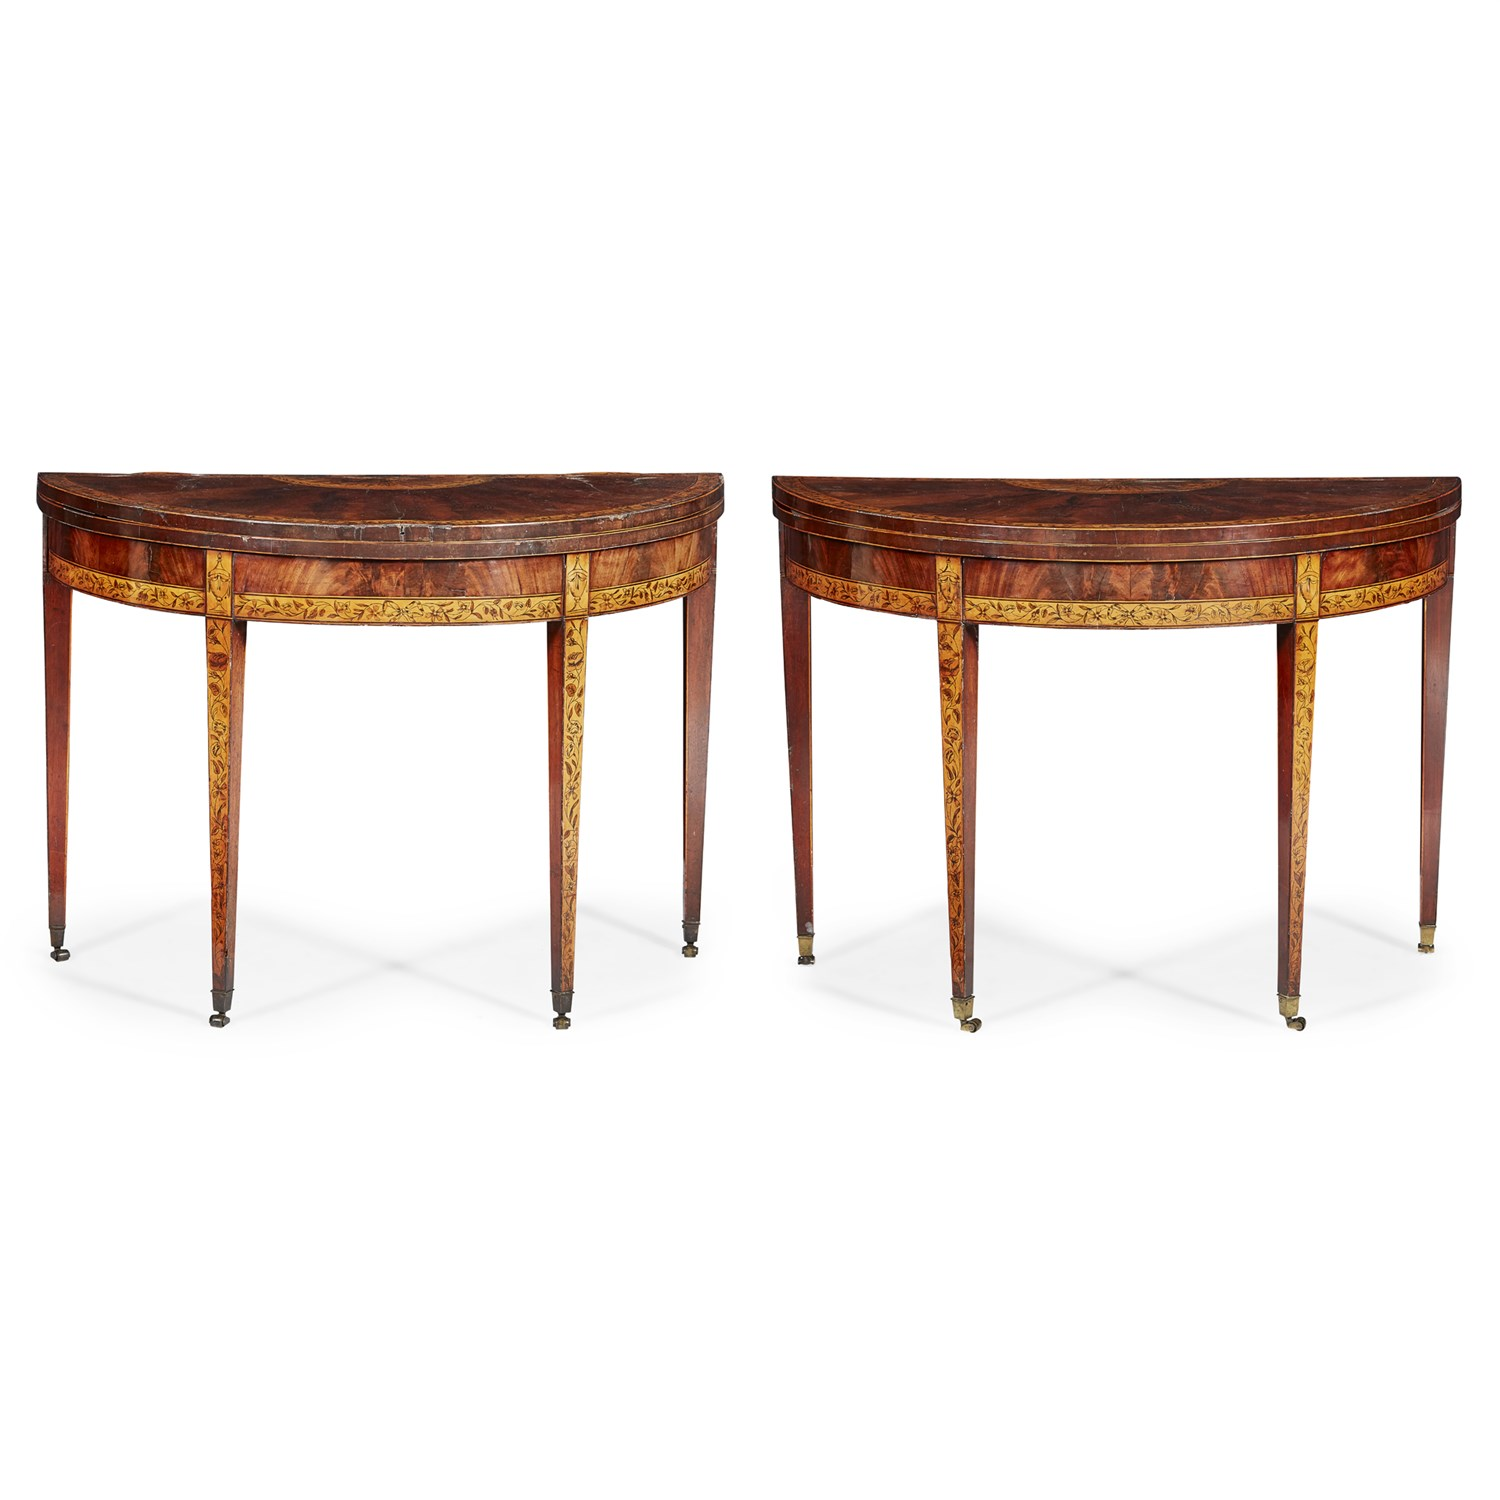 Lot 30 - PAIR OF GEORGE III MAHOGANY, SATINWOOD AND PENWORK DEMILUNE GAMES TABLES, POSSIBLY IRISH